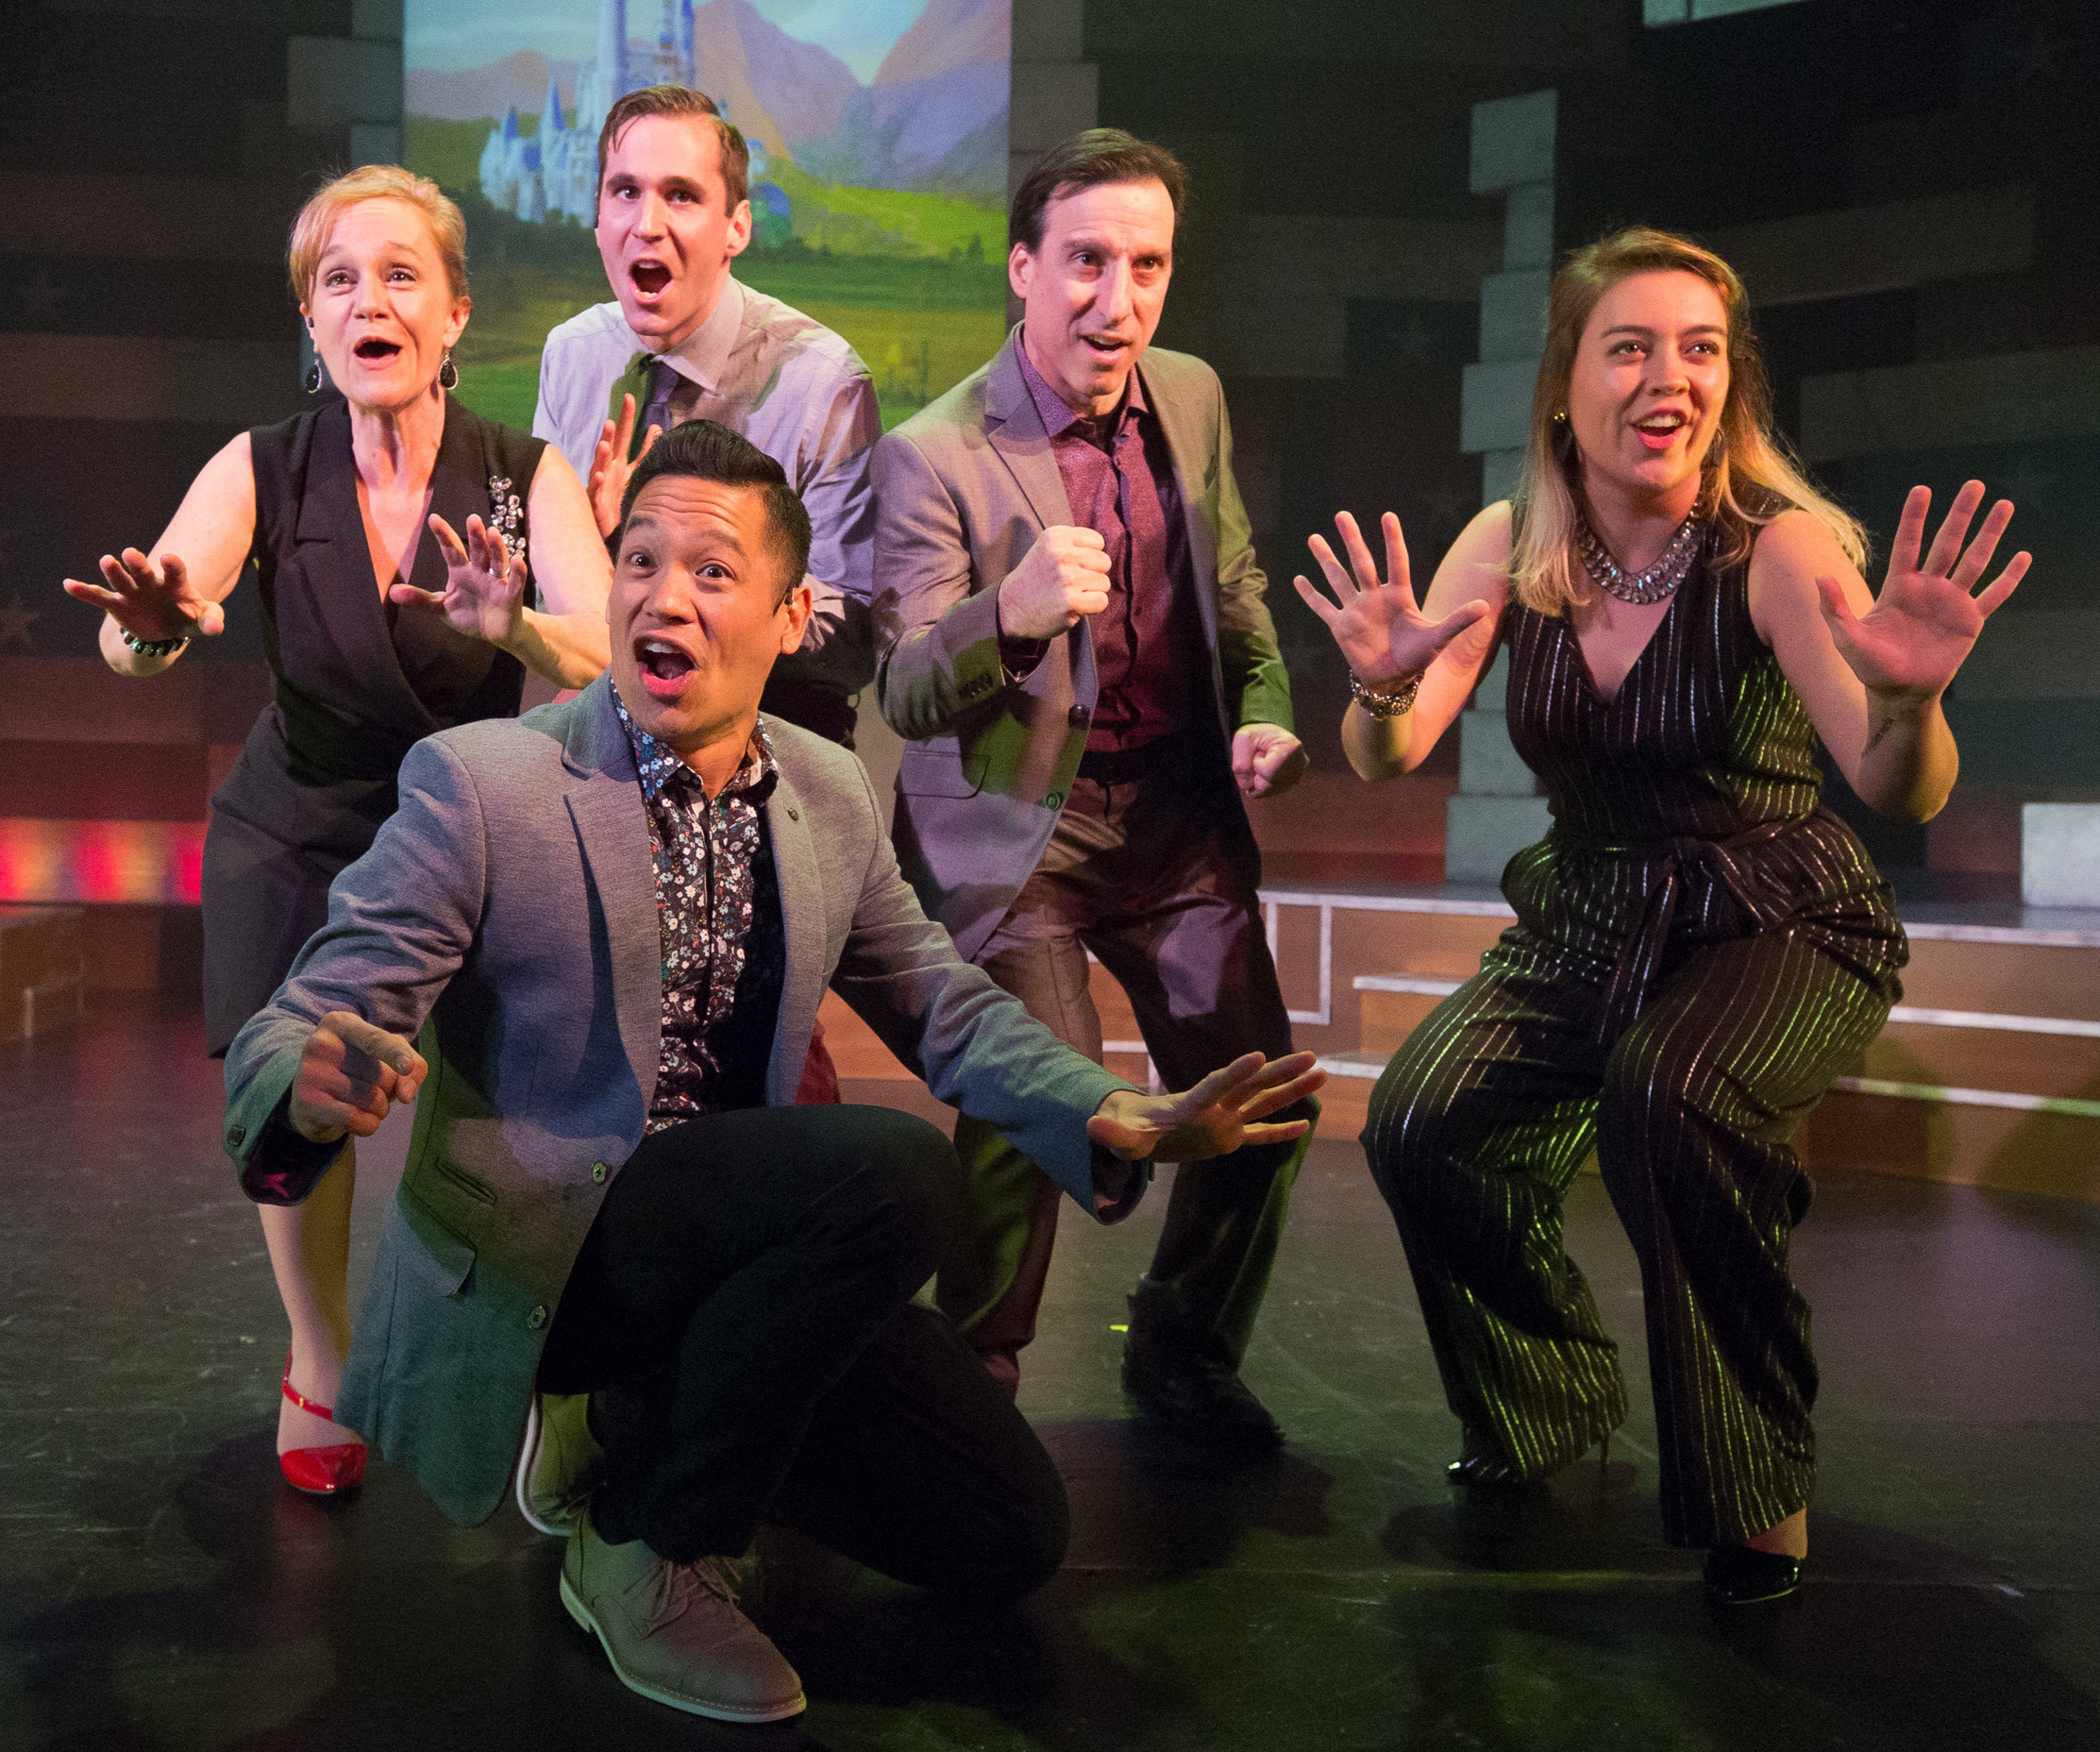 1812 Productions presents  This Is The Week That Is . Pictured (l-r): Jennifer Childs, Sean Close, Justin Jain (kneeling), Dave Jadico, Tanaquil Márquez. Photo by: Mark Garvin